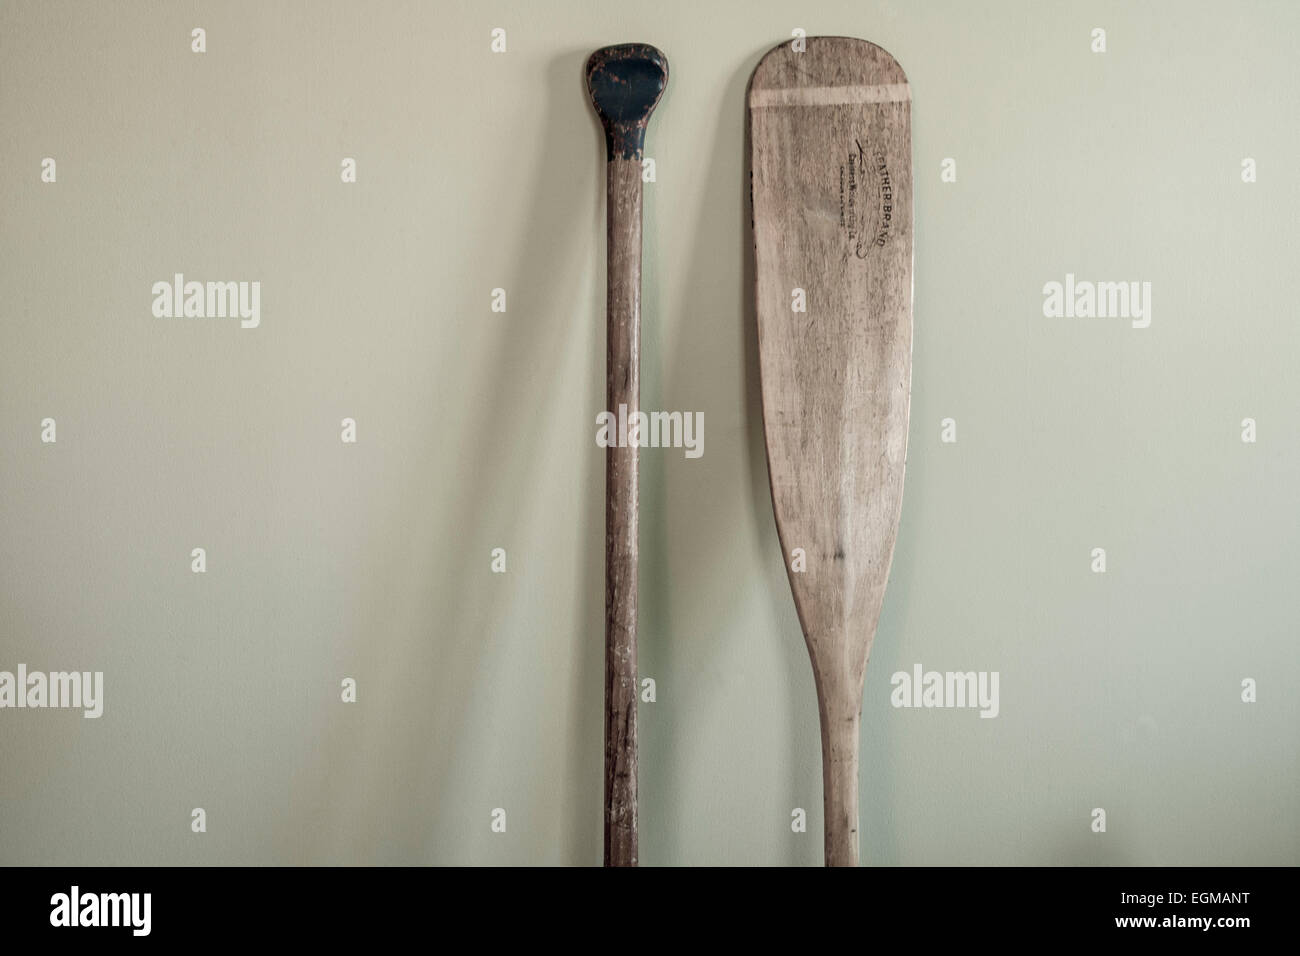 Decorative Canoe Paddles Leaning Against Bedroom Wall - Stock Image